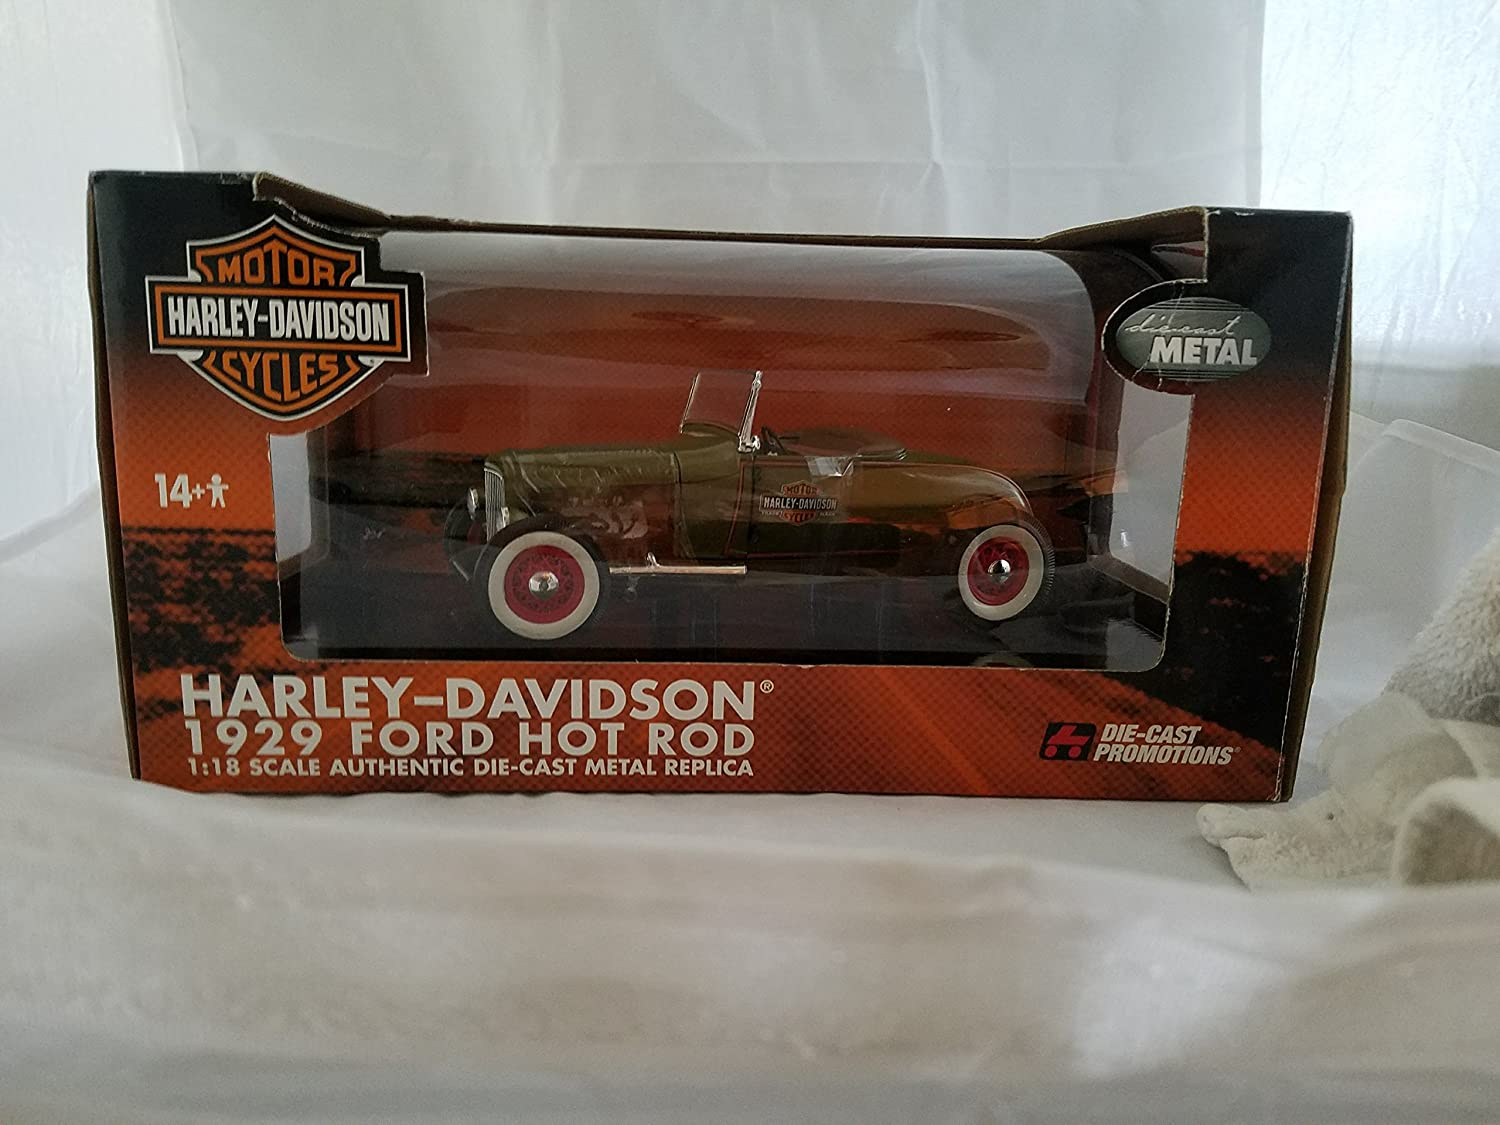 Amazon.com: 1929 Ford Hot Rod Harley Davidson 1/18 Diecast: Toys & Games